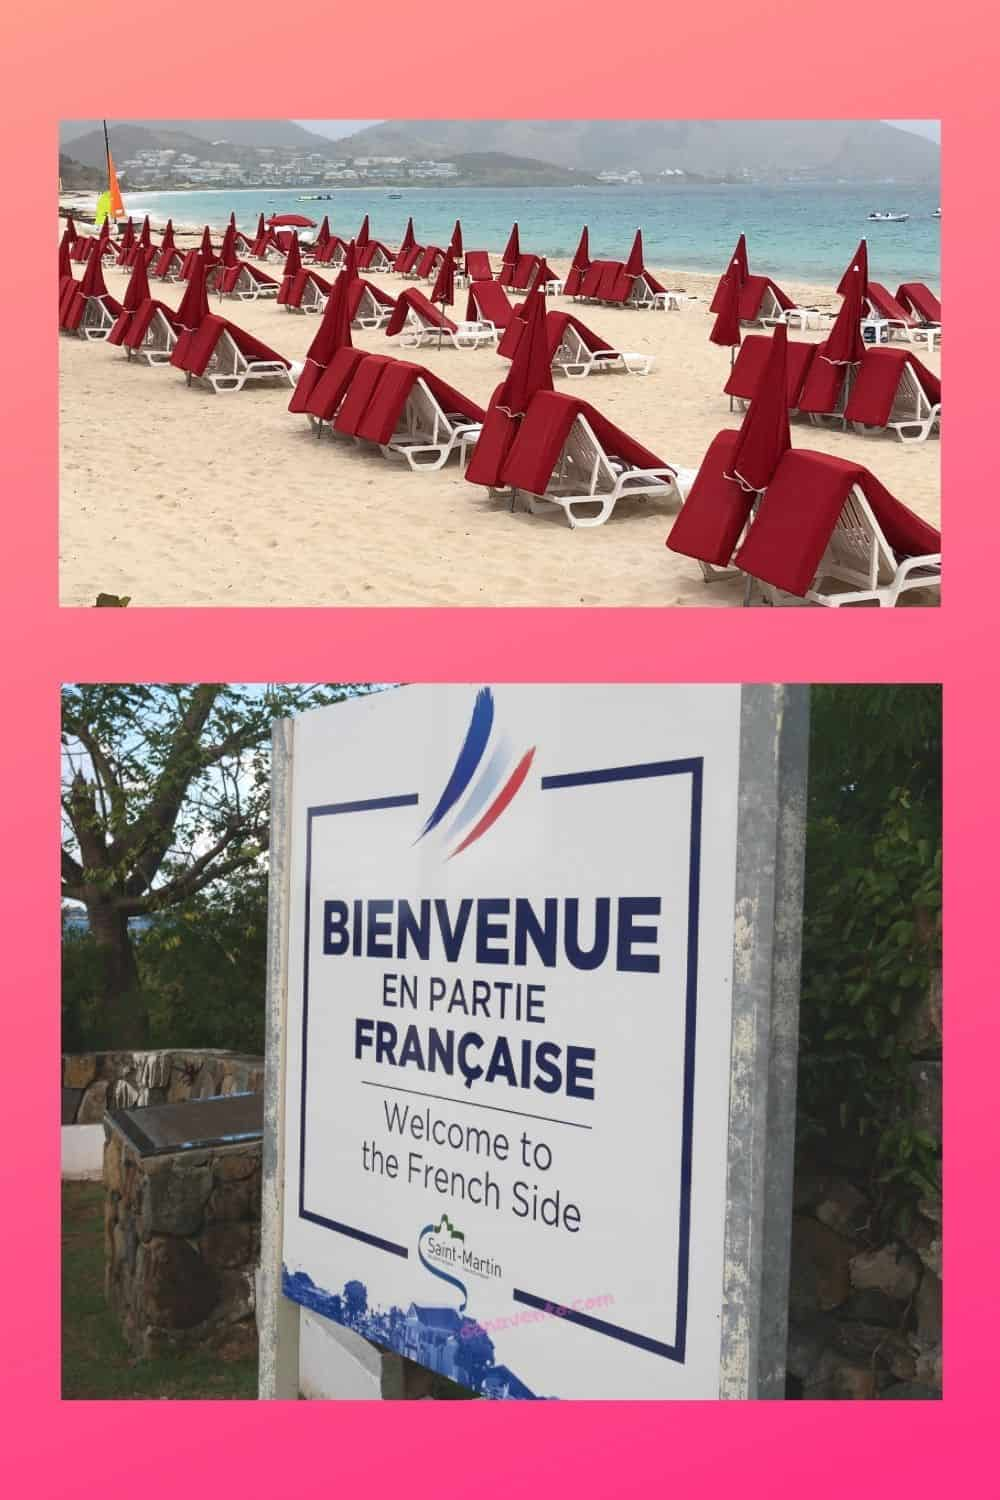 French Side of SXM beach and sign